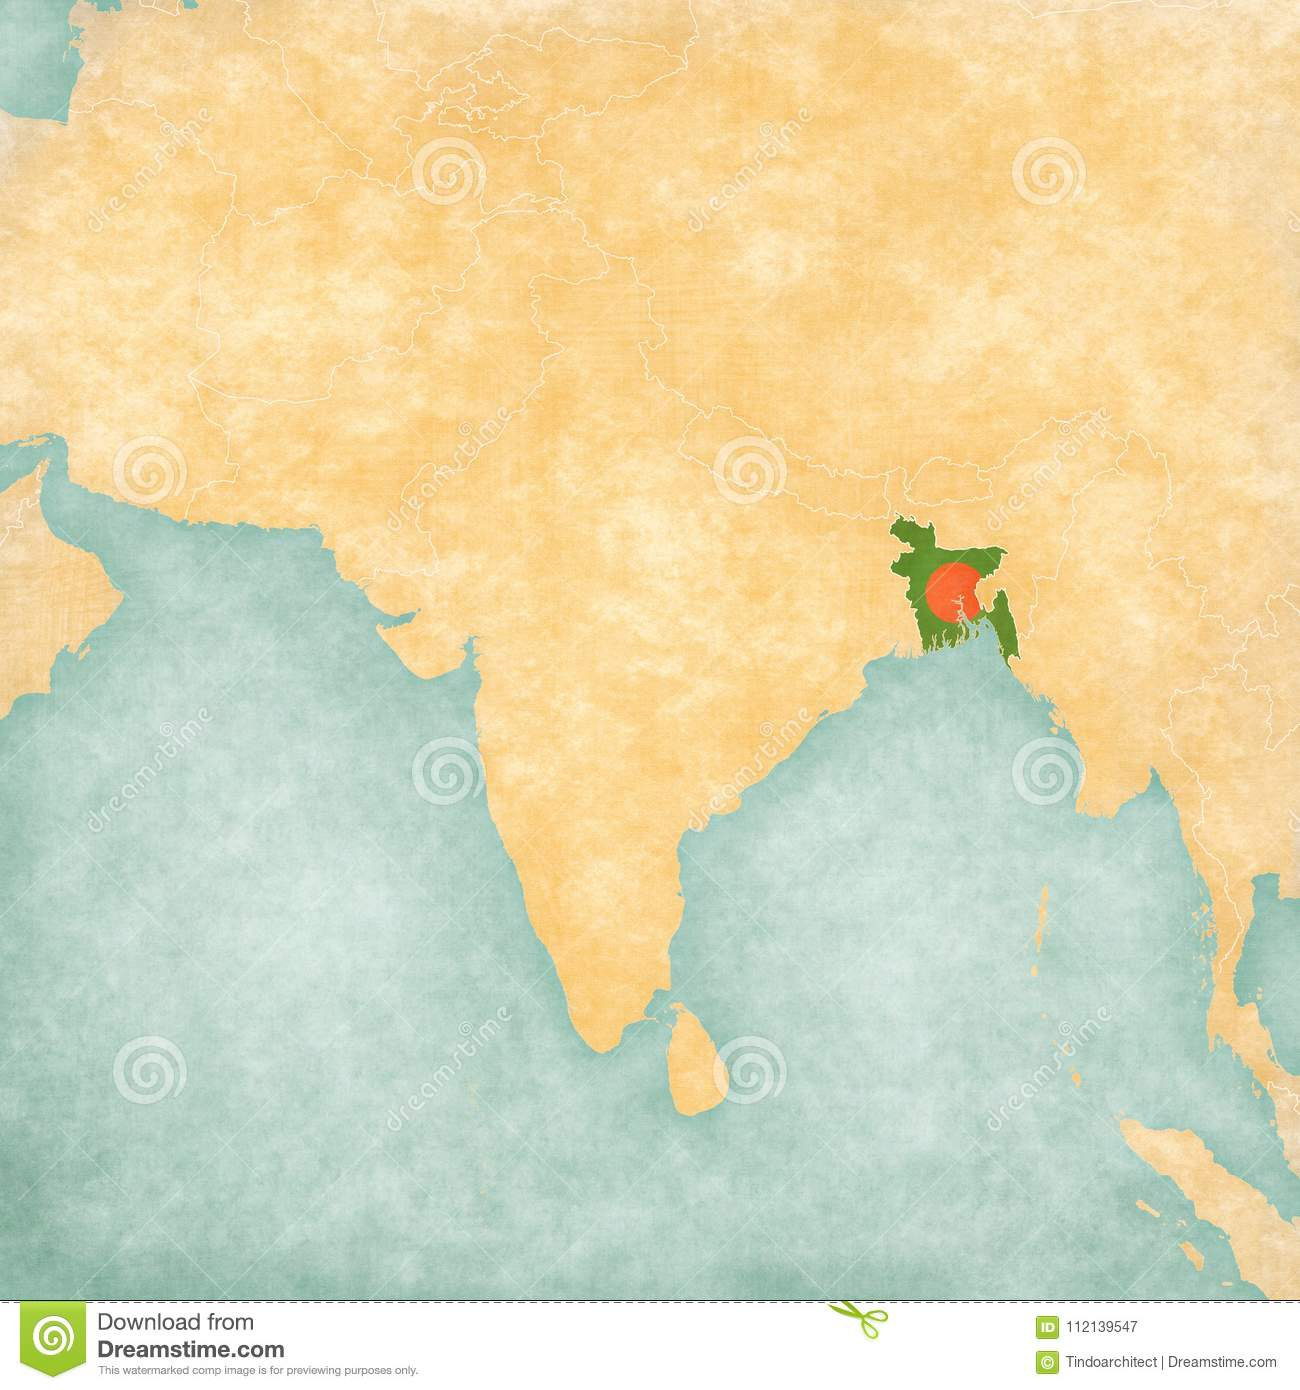 Bangladesh On Map Of Asia.Map Of South Asia Bangladesh Stock Illustration Illustration Of